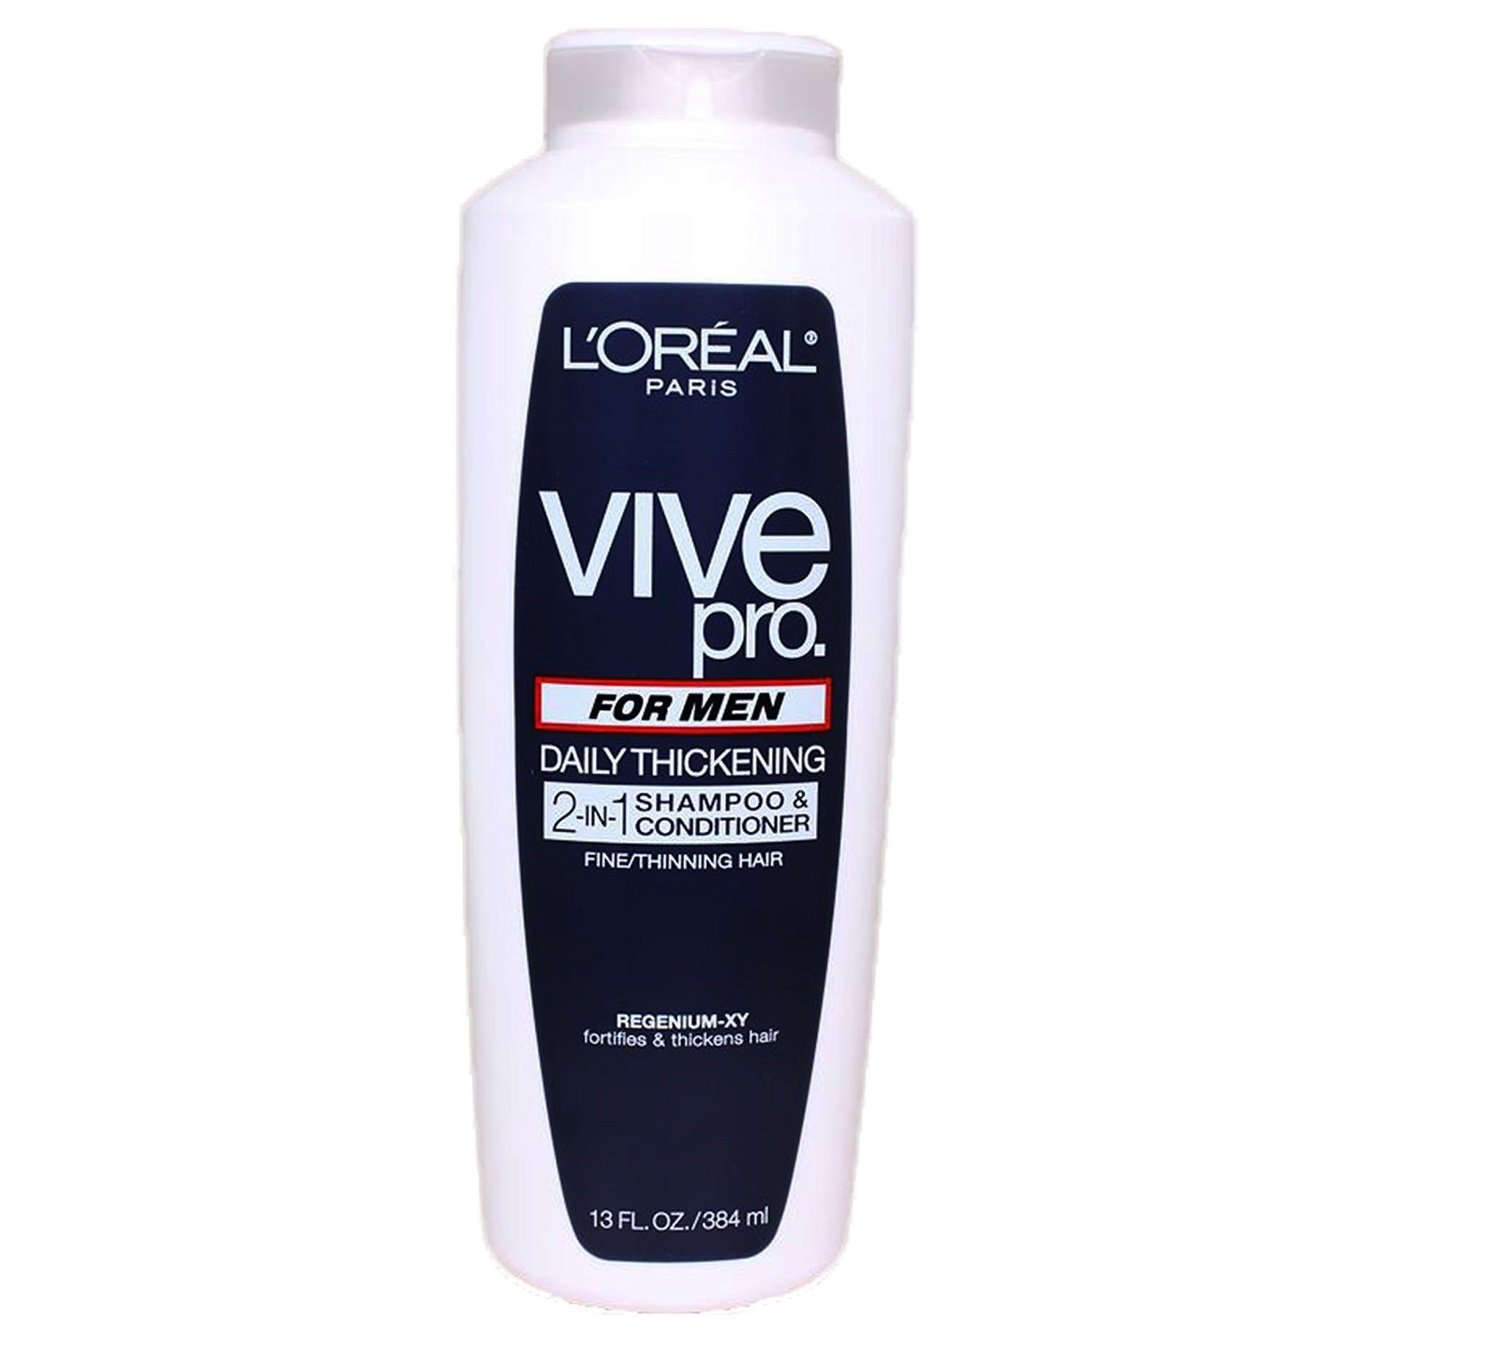 L'Oreal Paris Vive Pro For Men Daily Thickening 2-in-1 Shampoo & Conditioner, 13.0 Fluid Ounce